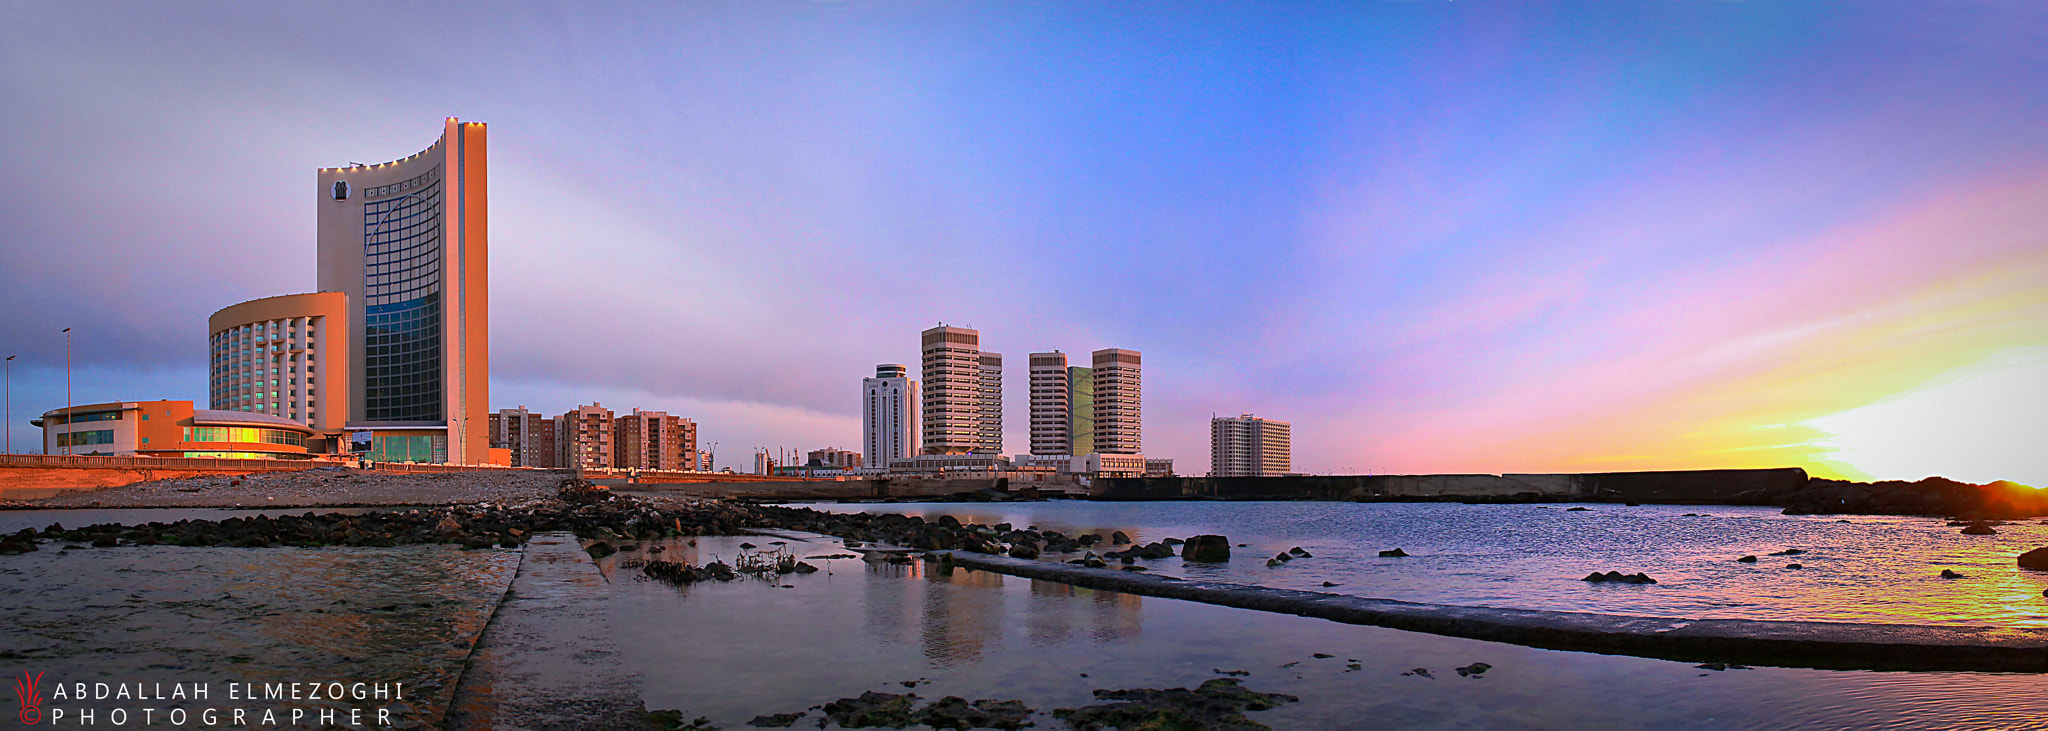 Photograph panorama tripoli by AbdallaH ElmezOghi on 500px